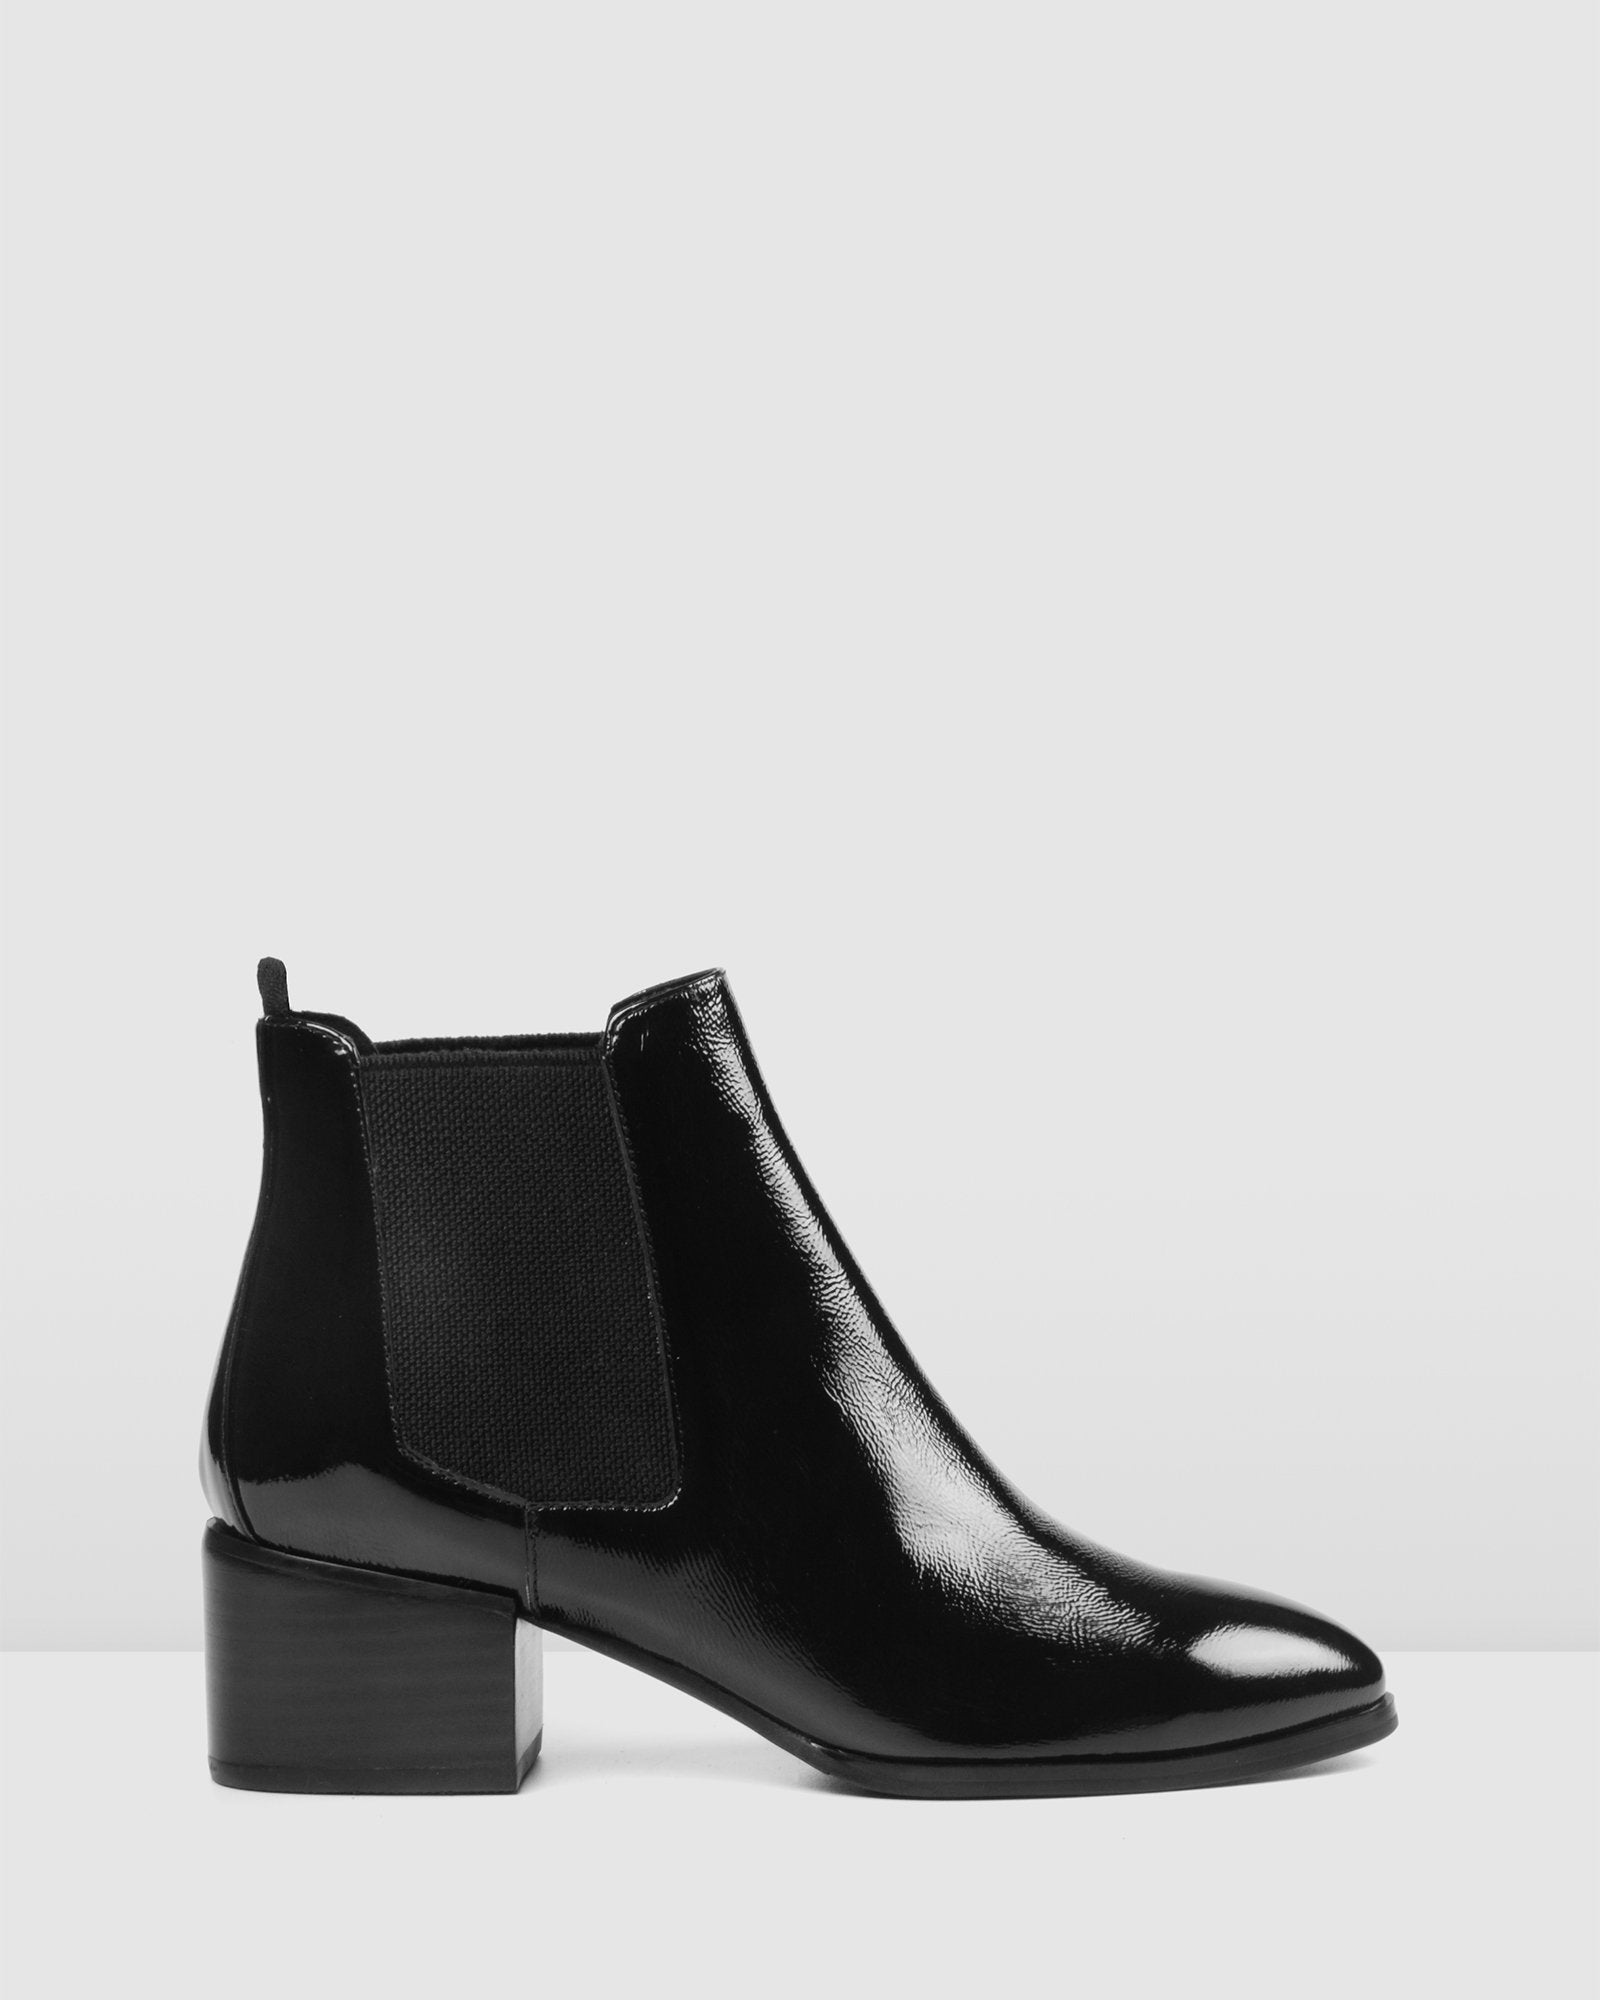 MONSTER MID ANKLE BOOTS BLACK PATENT